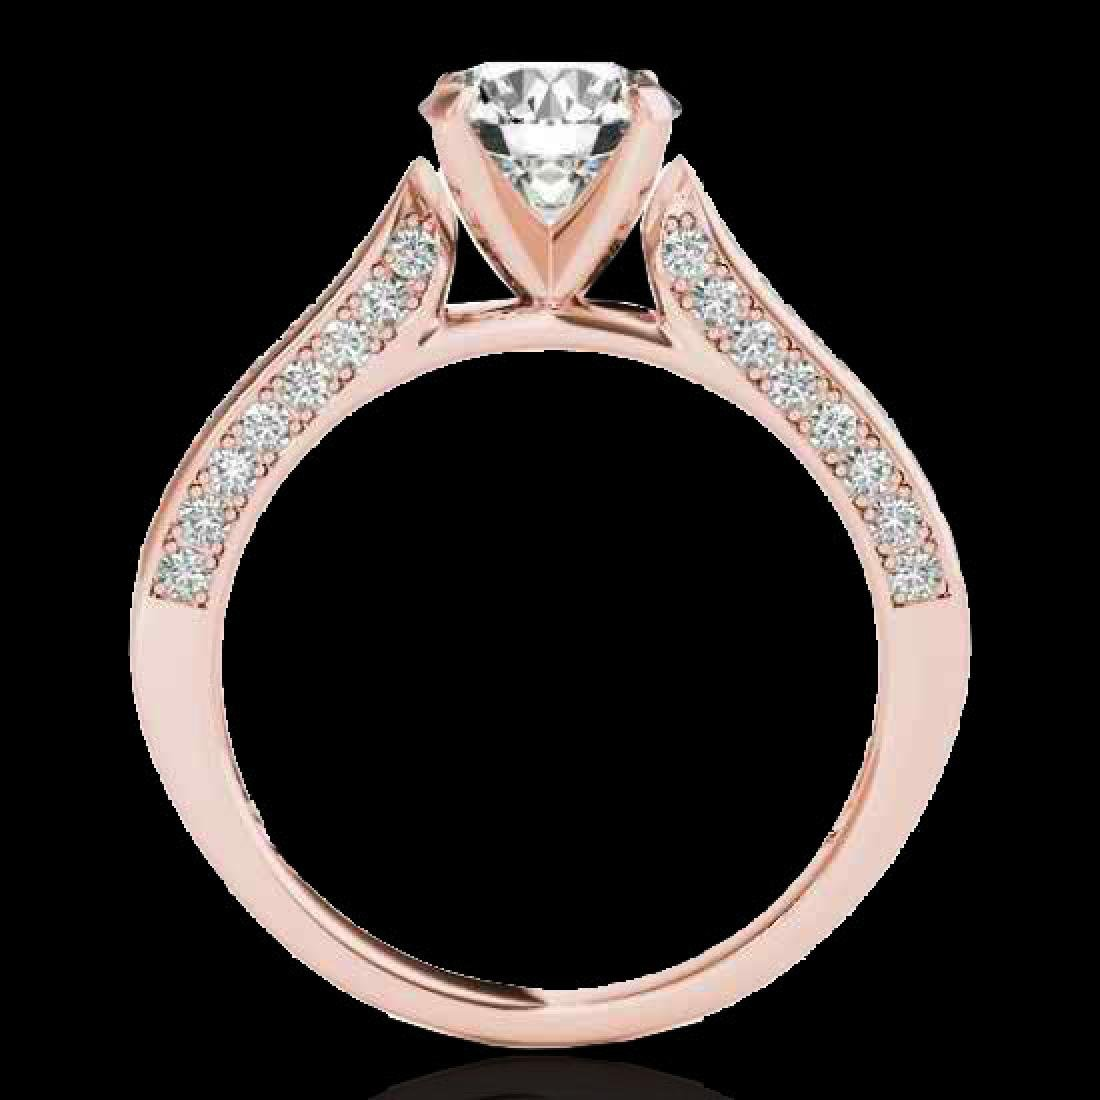 1.6 CTW H-SI/I Certified Diamond Solitaire Ring 10K - 2